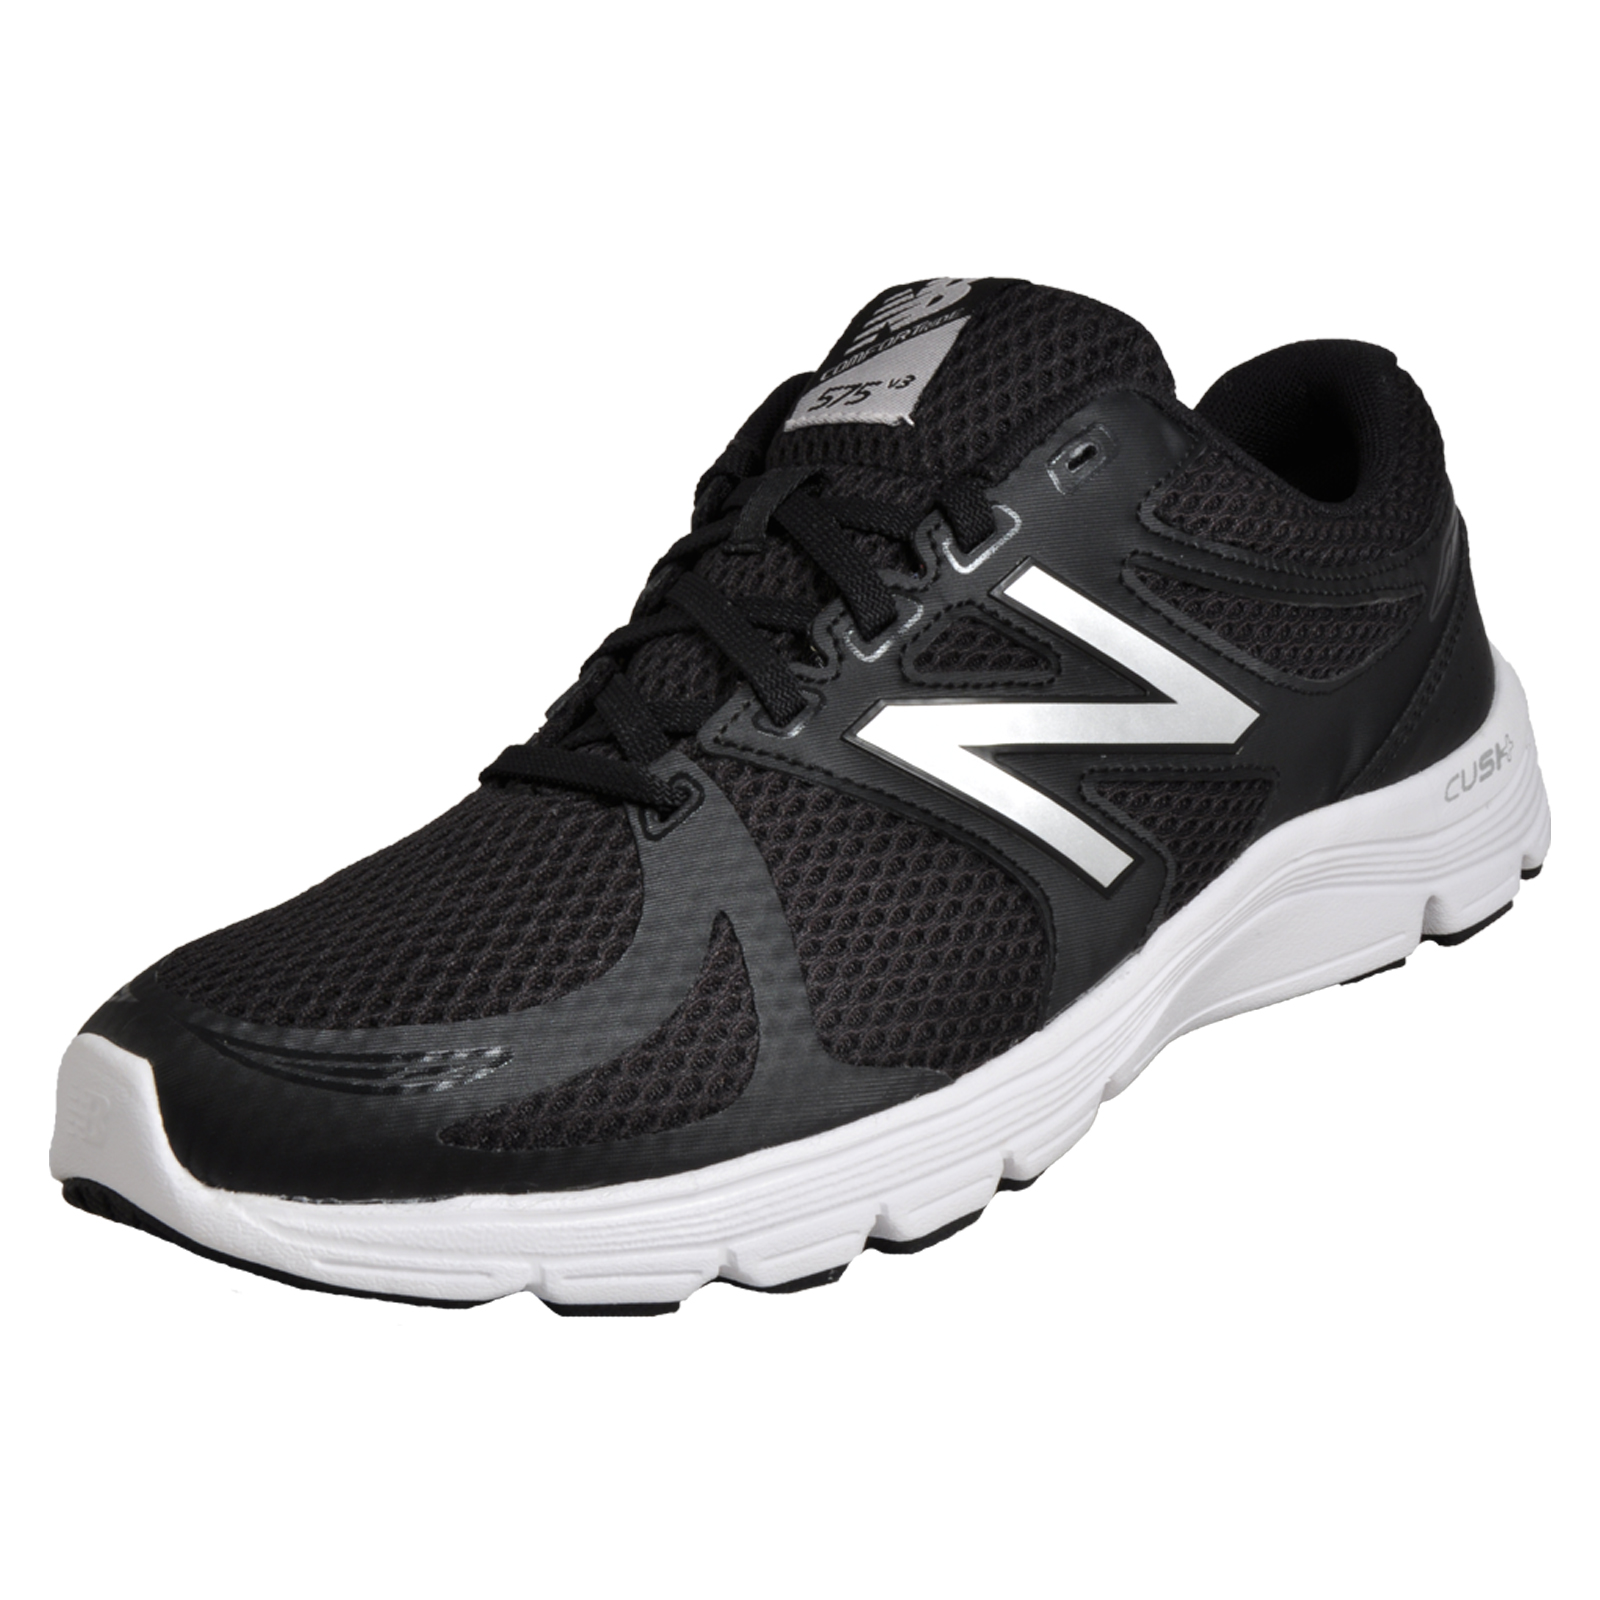 magasin d'usine c47dc a3871 Details about New Balance 575 V3 Men's Premium Running Shoes Fitness Gym  Trainers Black